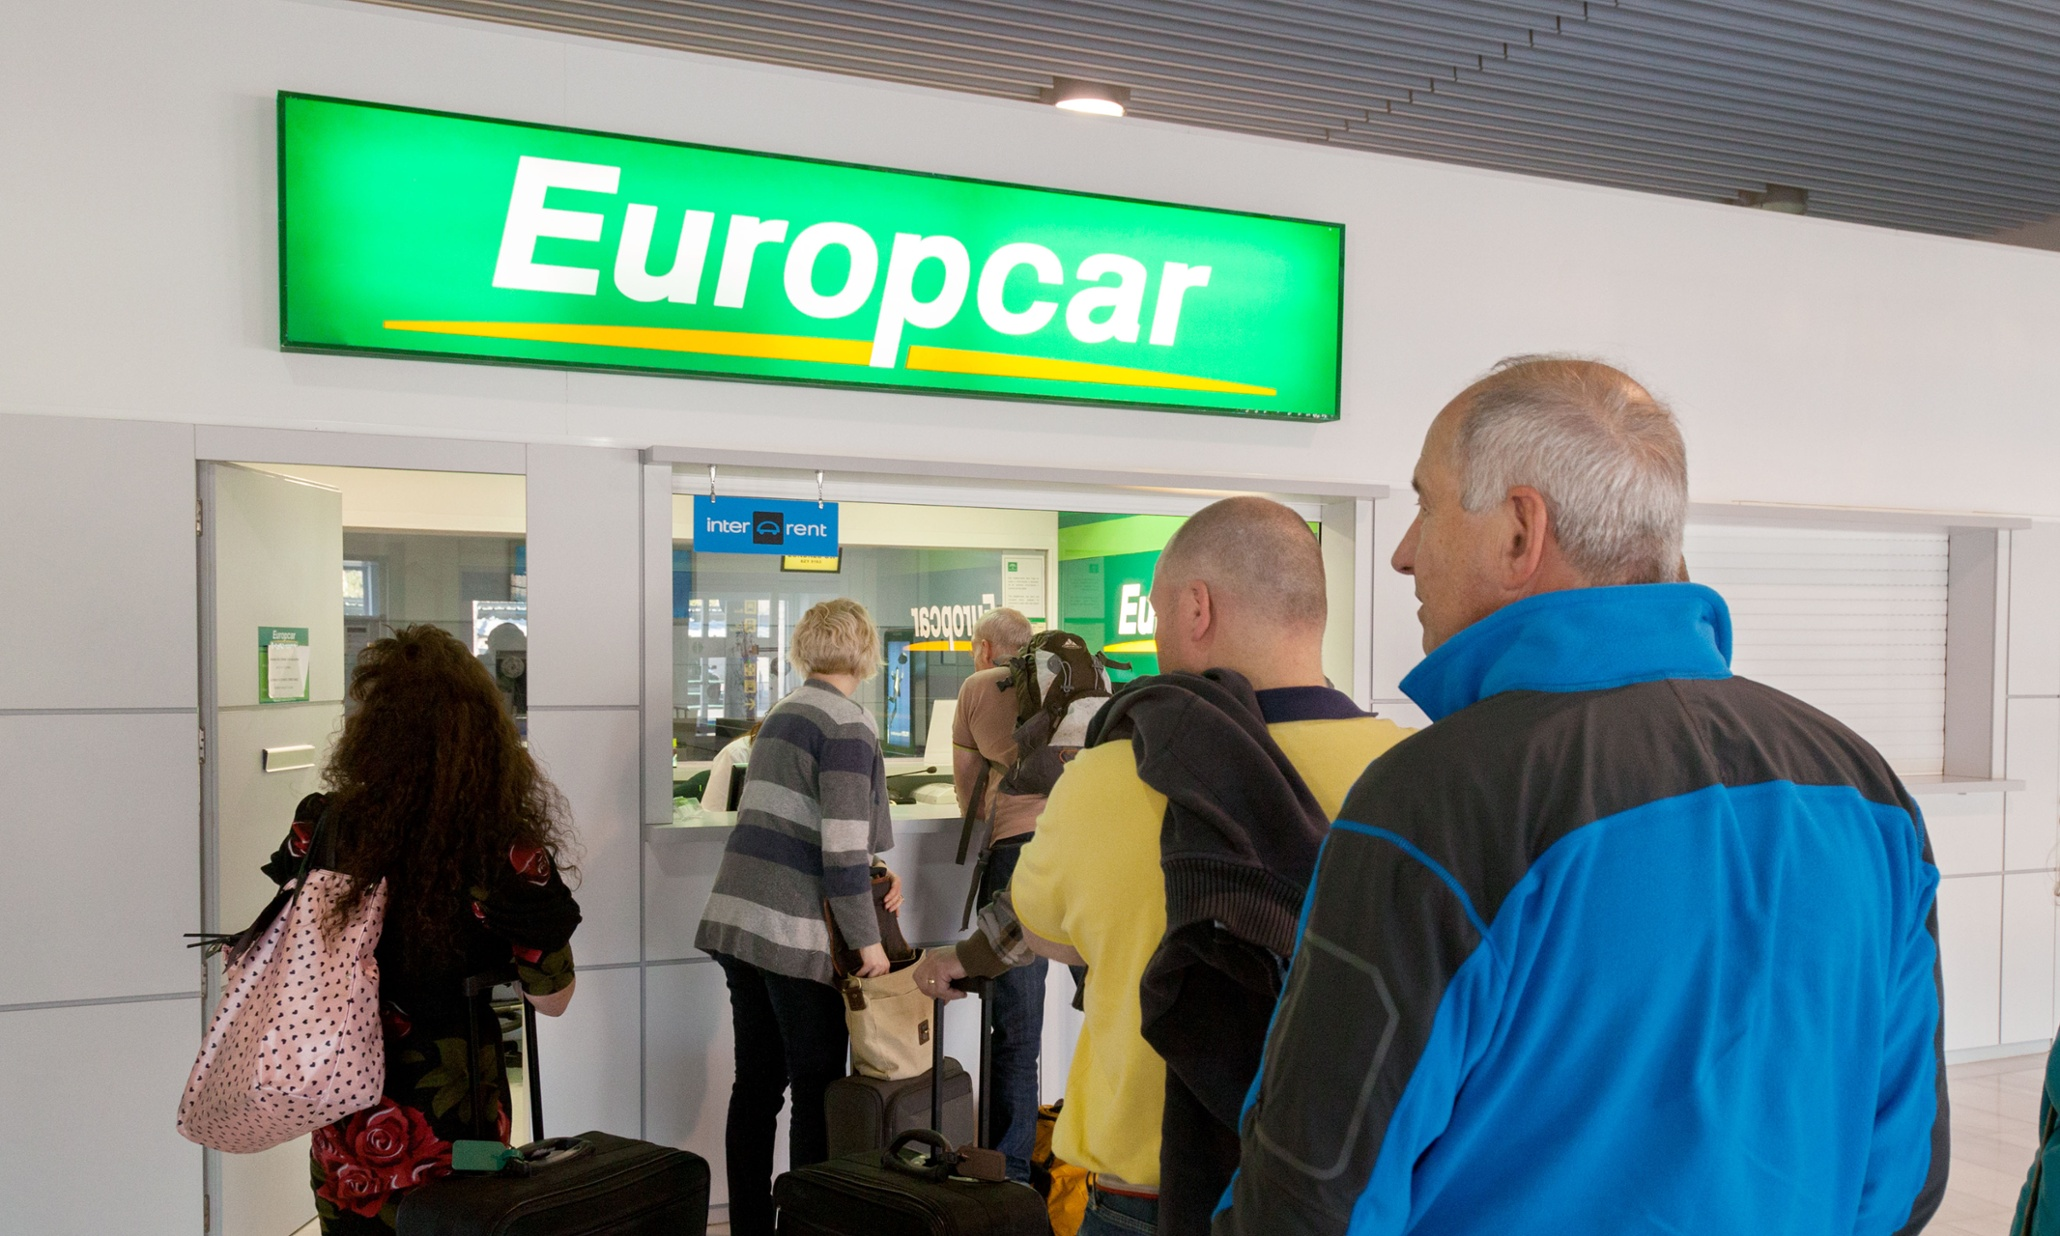 Exclusive Advantages from Europcar Rent a Car in Spain for you! Check out the advantages for your car rental with Europcar Rent a Car in Spain! Book the best cars now, for the lowest prices and with the greatest advantages.